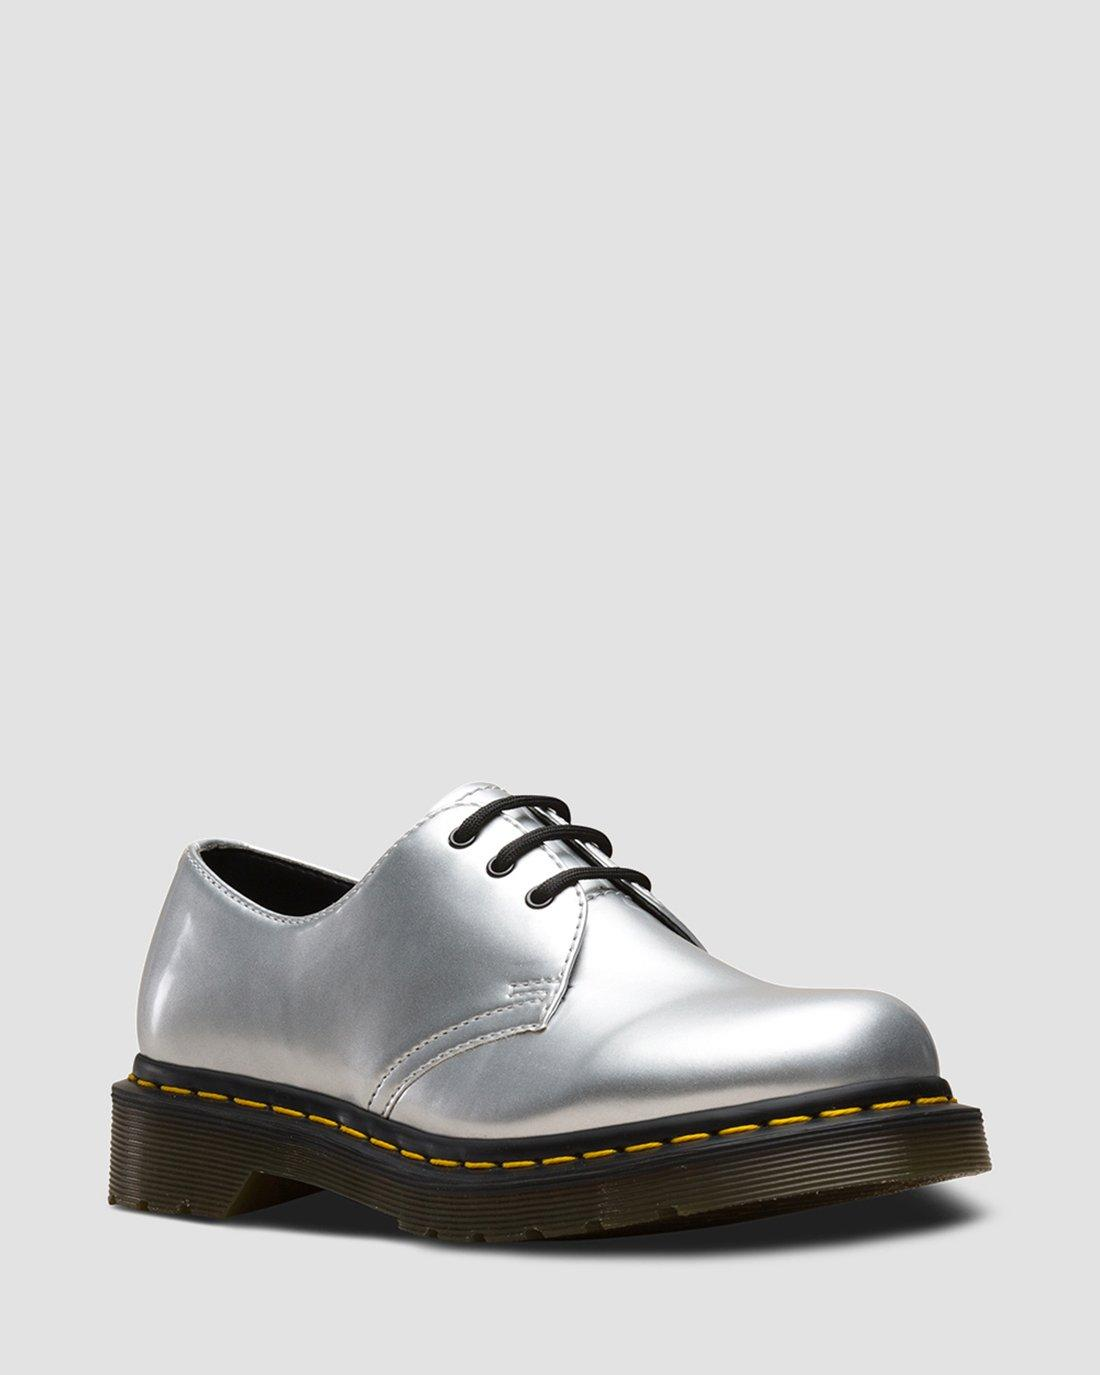 New Women's Dr. Martens Vegan 1461 Shoes | Fashion in 2019